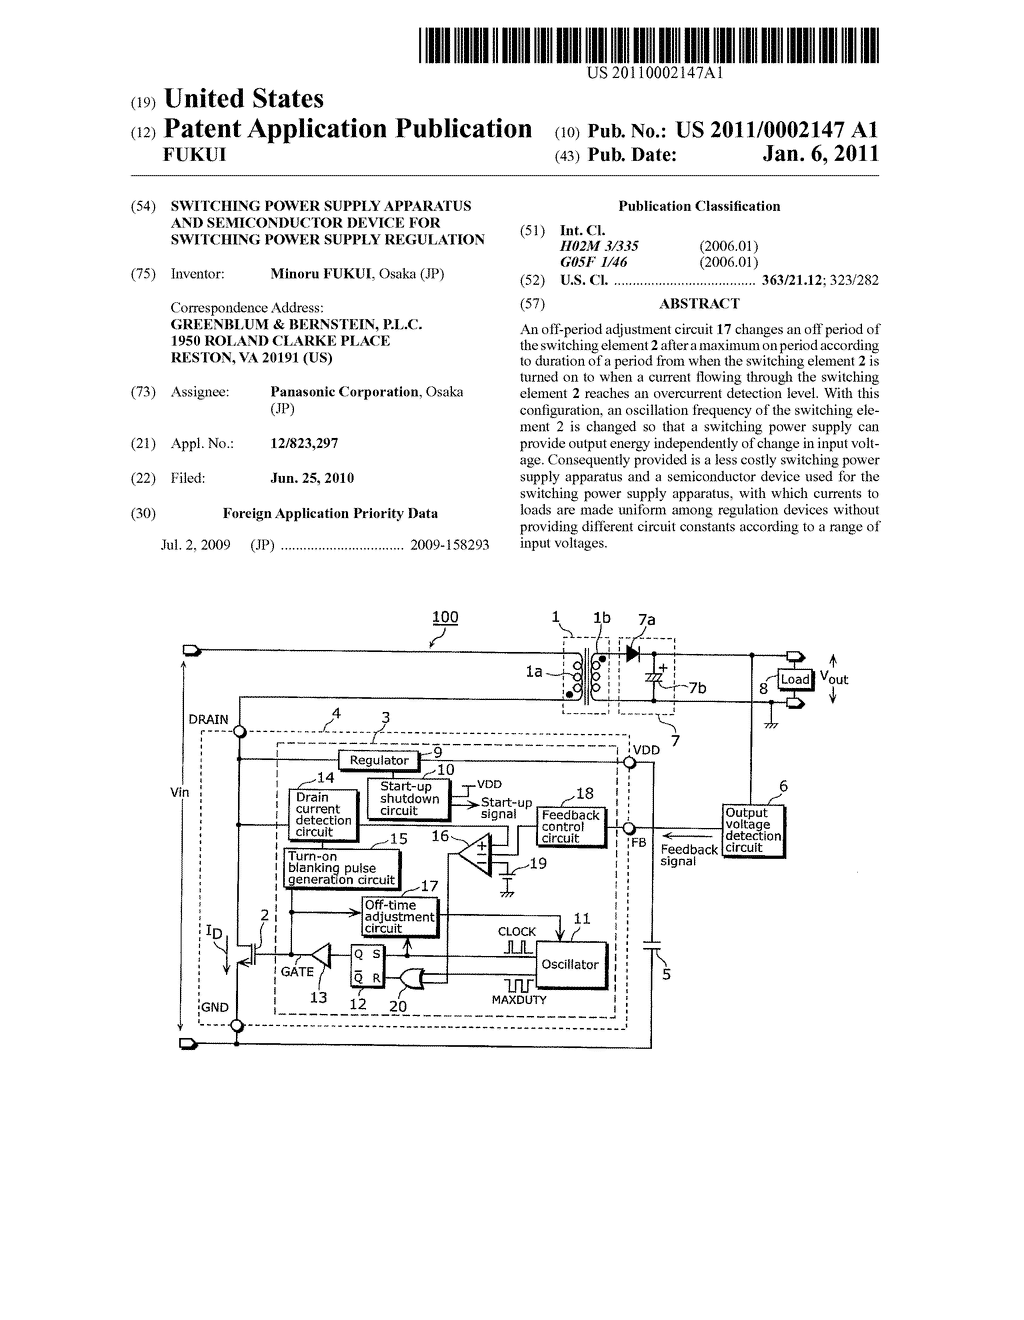 SWITCHING POWER SUPPLY APPARATUS AND SEMICONDUCTOR DEVICE FOR SWITCHING POWER SUPPLY REGULATION - diagram, schematic, and image 01